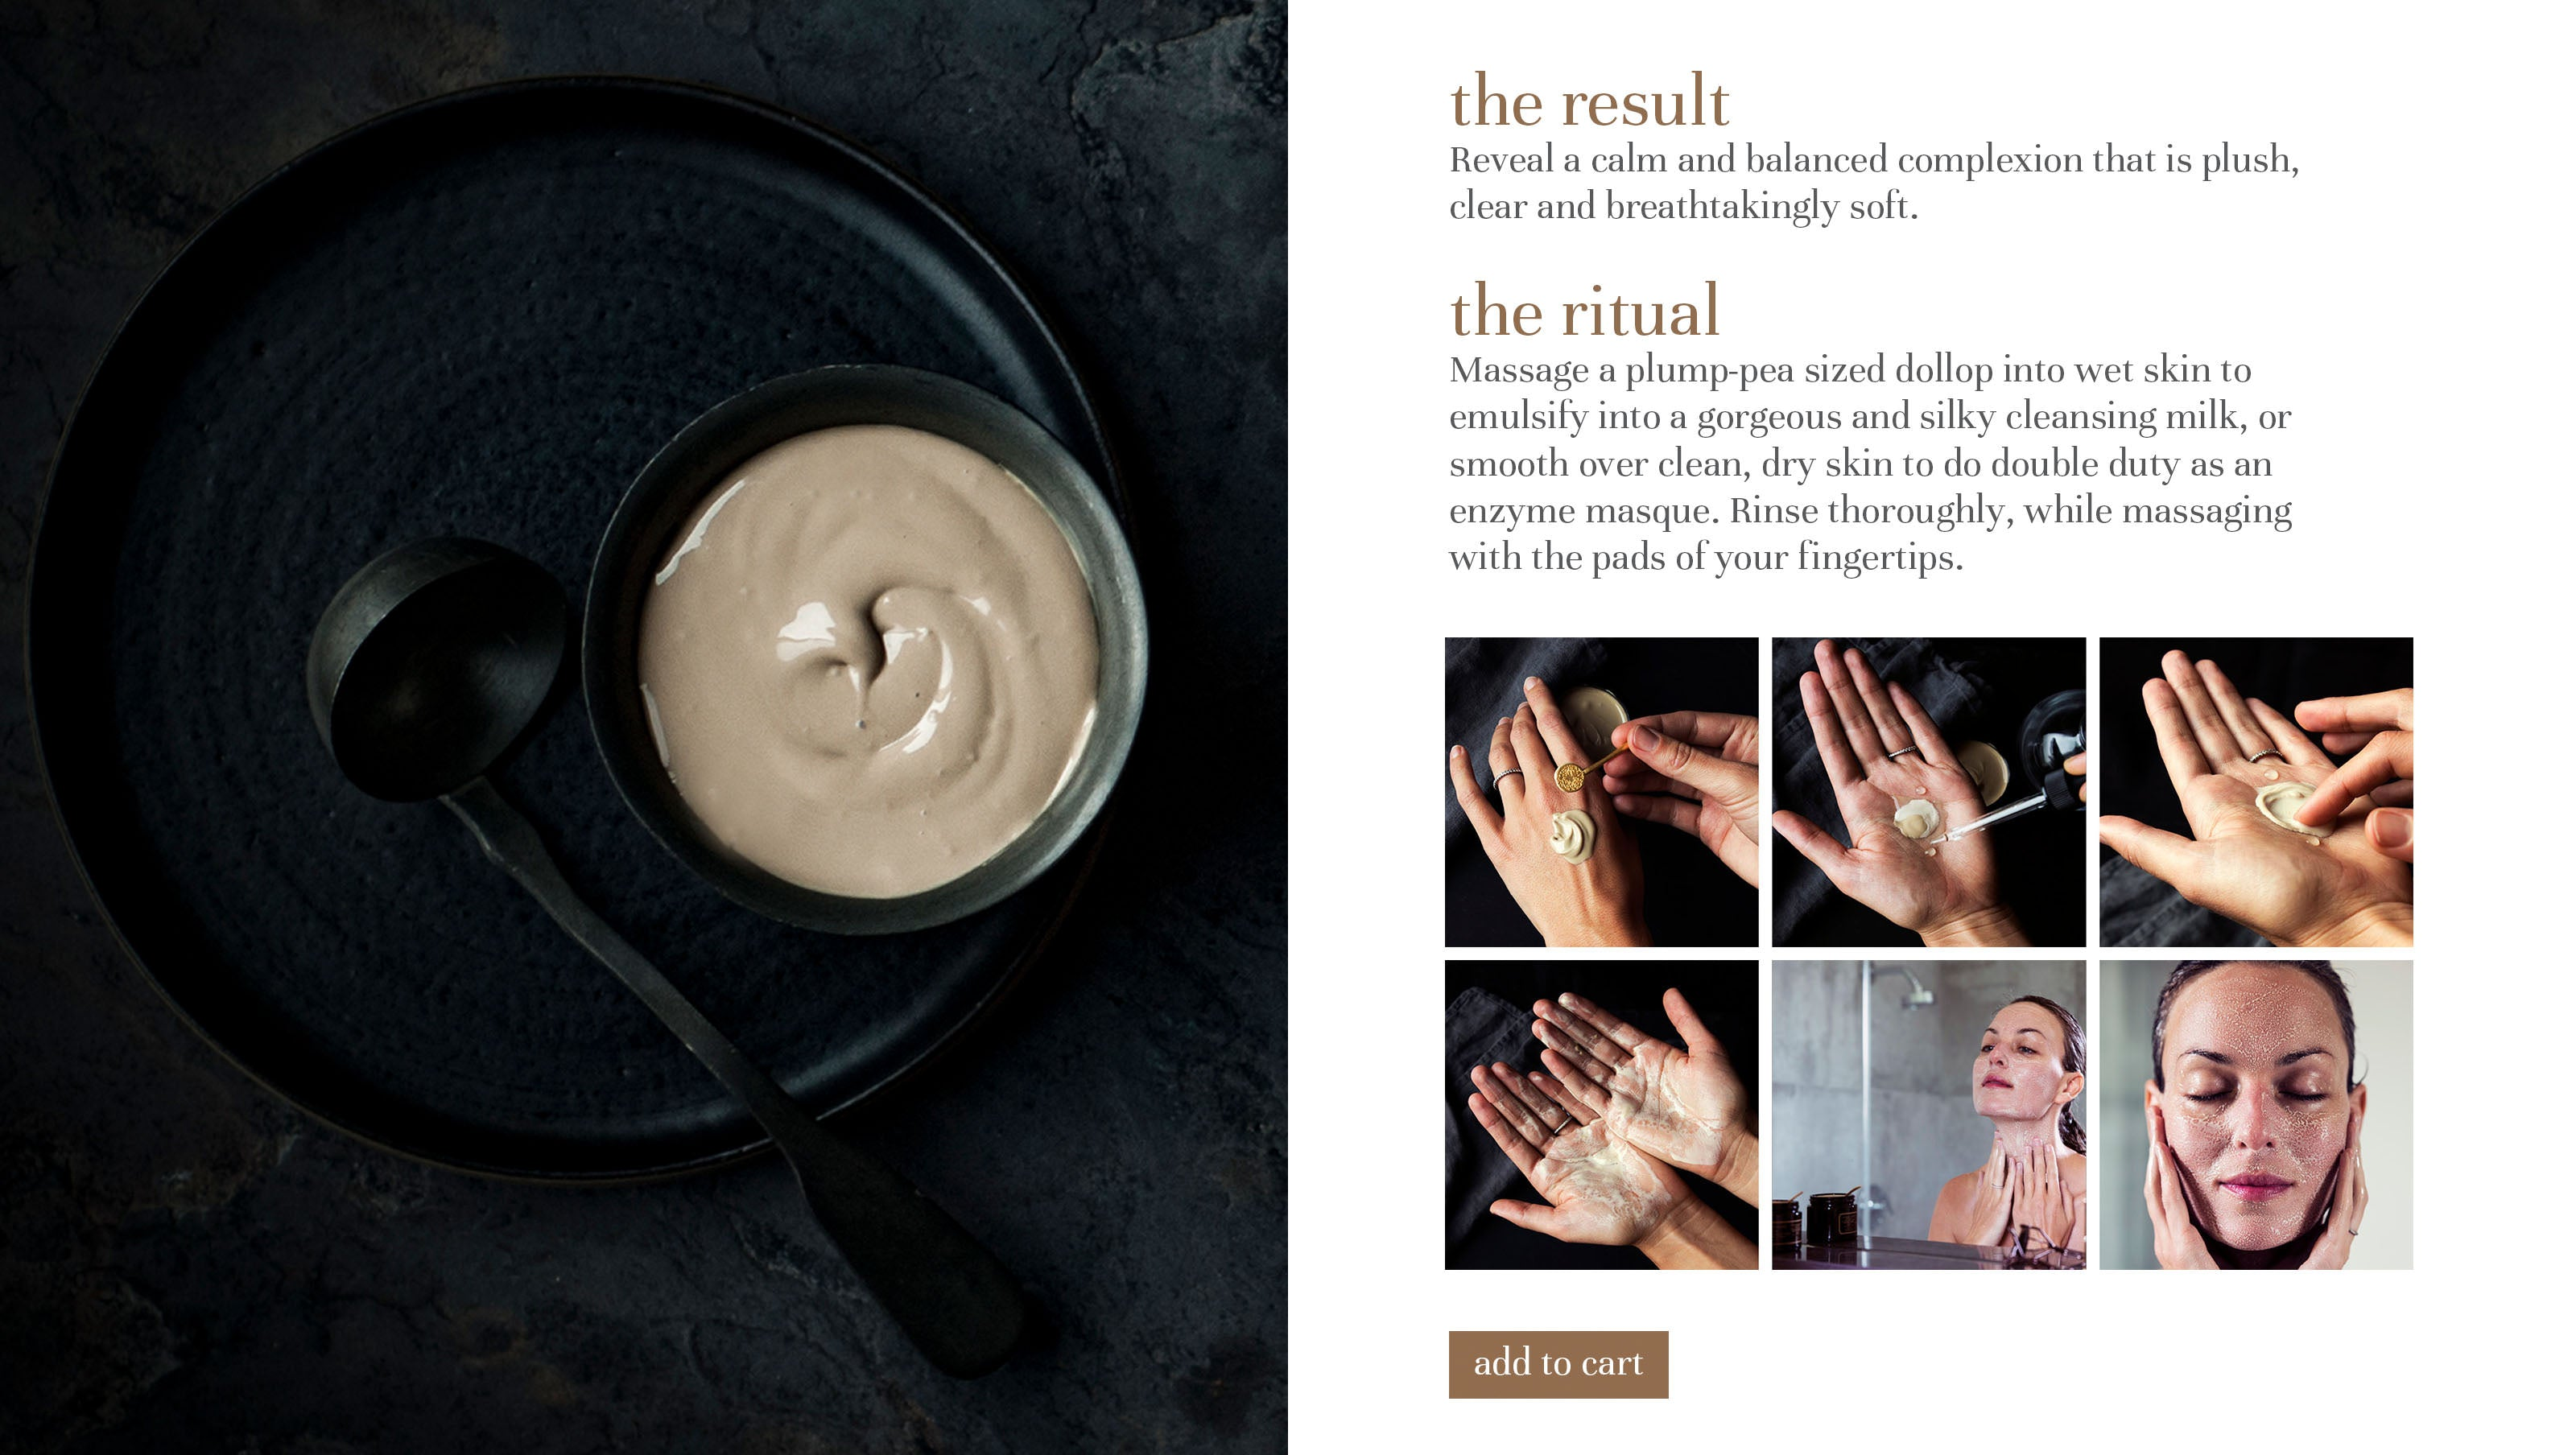 the result Reveal a calm and balanced complexion that is plush, clear and breathtakingly soft.  the ritual Massage a plump-pea sized dollop into wet skin to emulsify into a gorgeous and silky cleansing milk, or smooth over clean, dry skin to do double duty as an enzyme masque. Rinse thoroughly, while massaging with the pads of your fingertips.